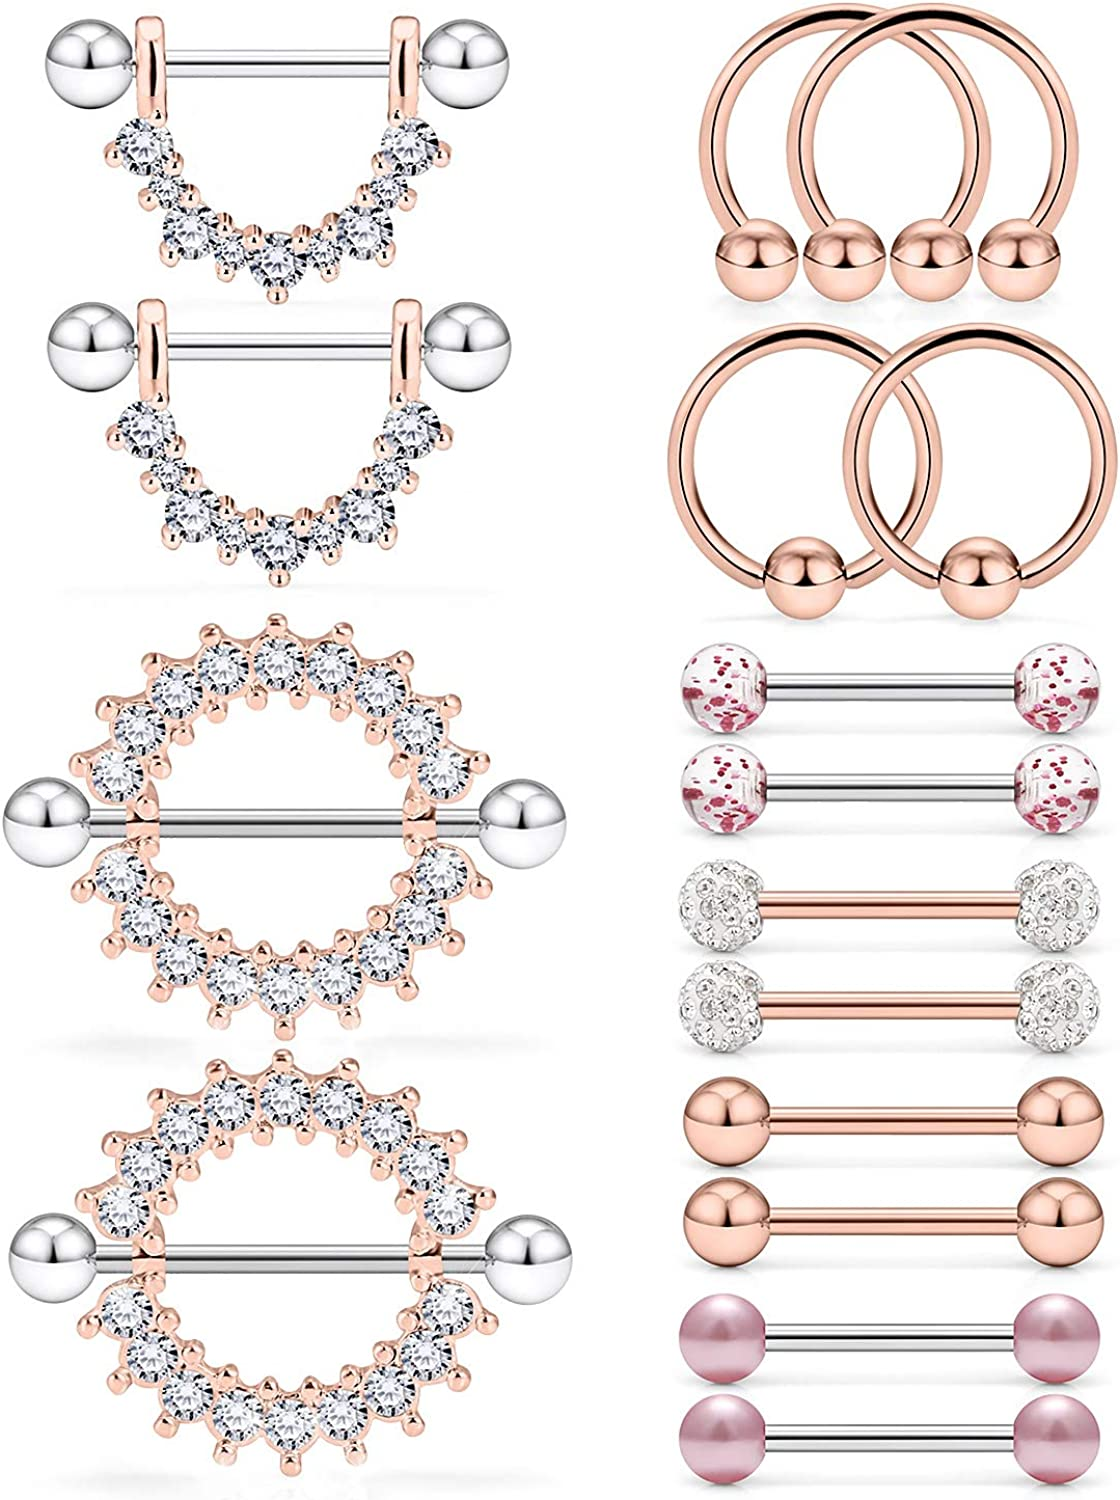 Ruifan 16G 9/16Inch Crystal Ball Nipple Tongue Tongue Shield Rings Stainless Steel Straight Barbell Body Piercing Jewelry Retainer